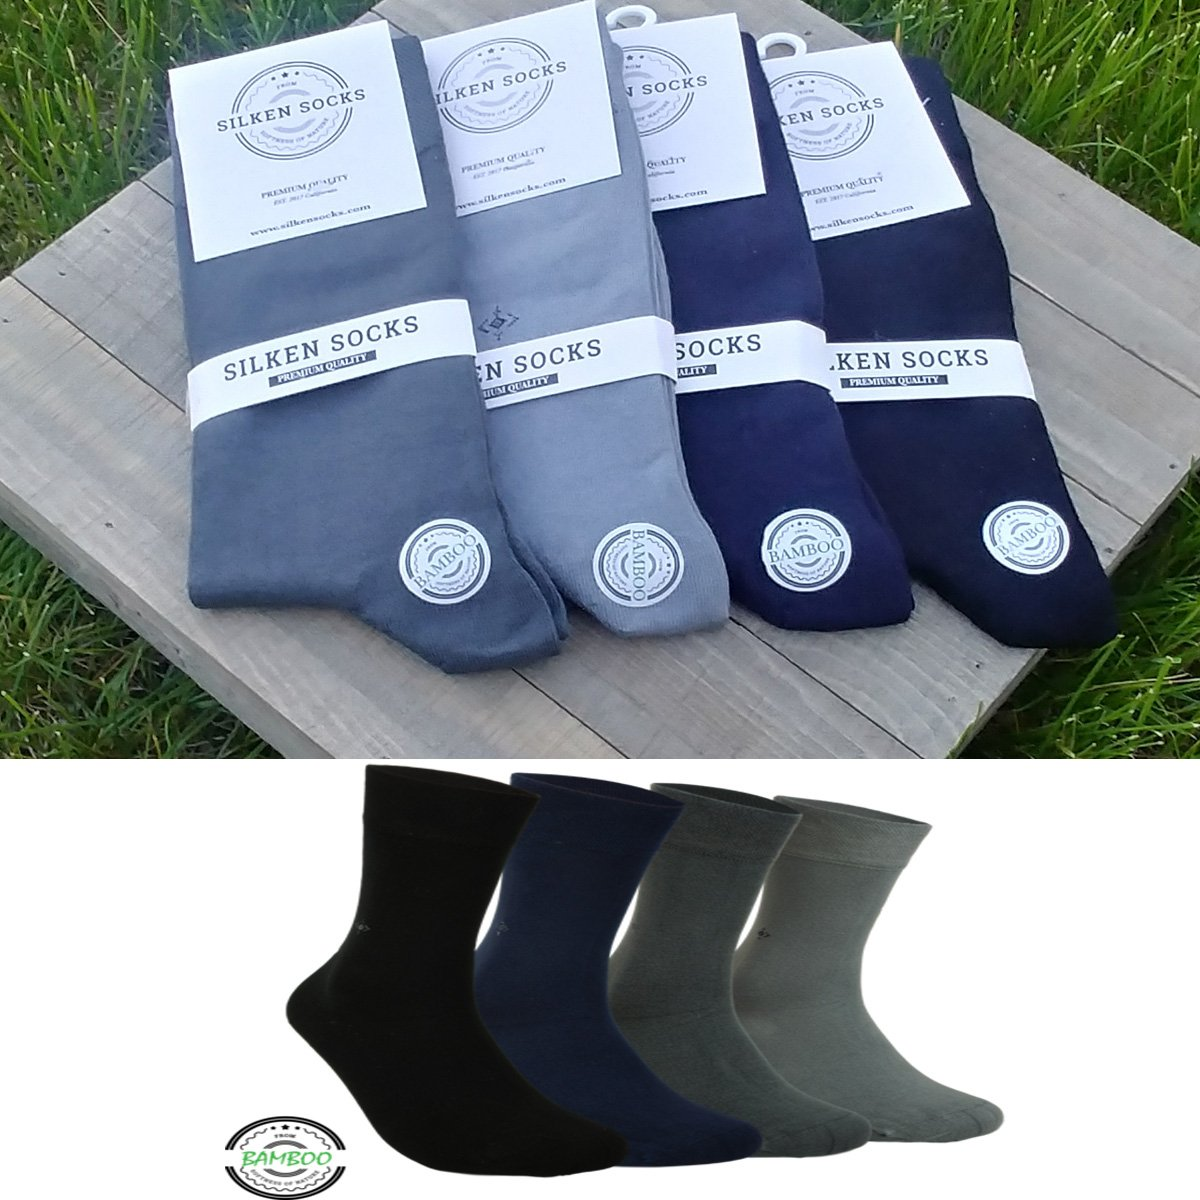 Mens Natural BAMBOO SOCKS - 4 Pair, Antibacterial, Scented, Cashmere Touch (2)